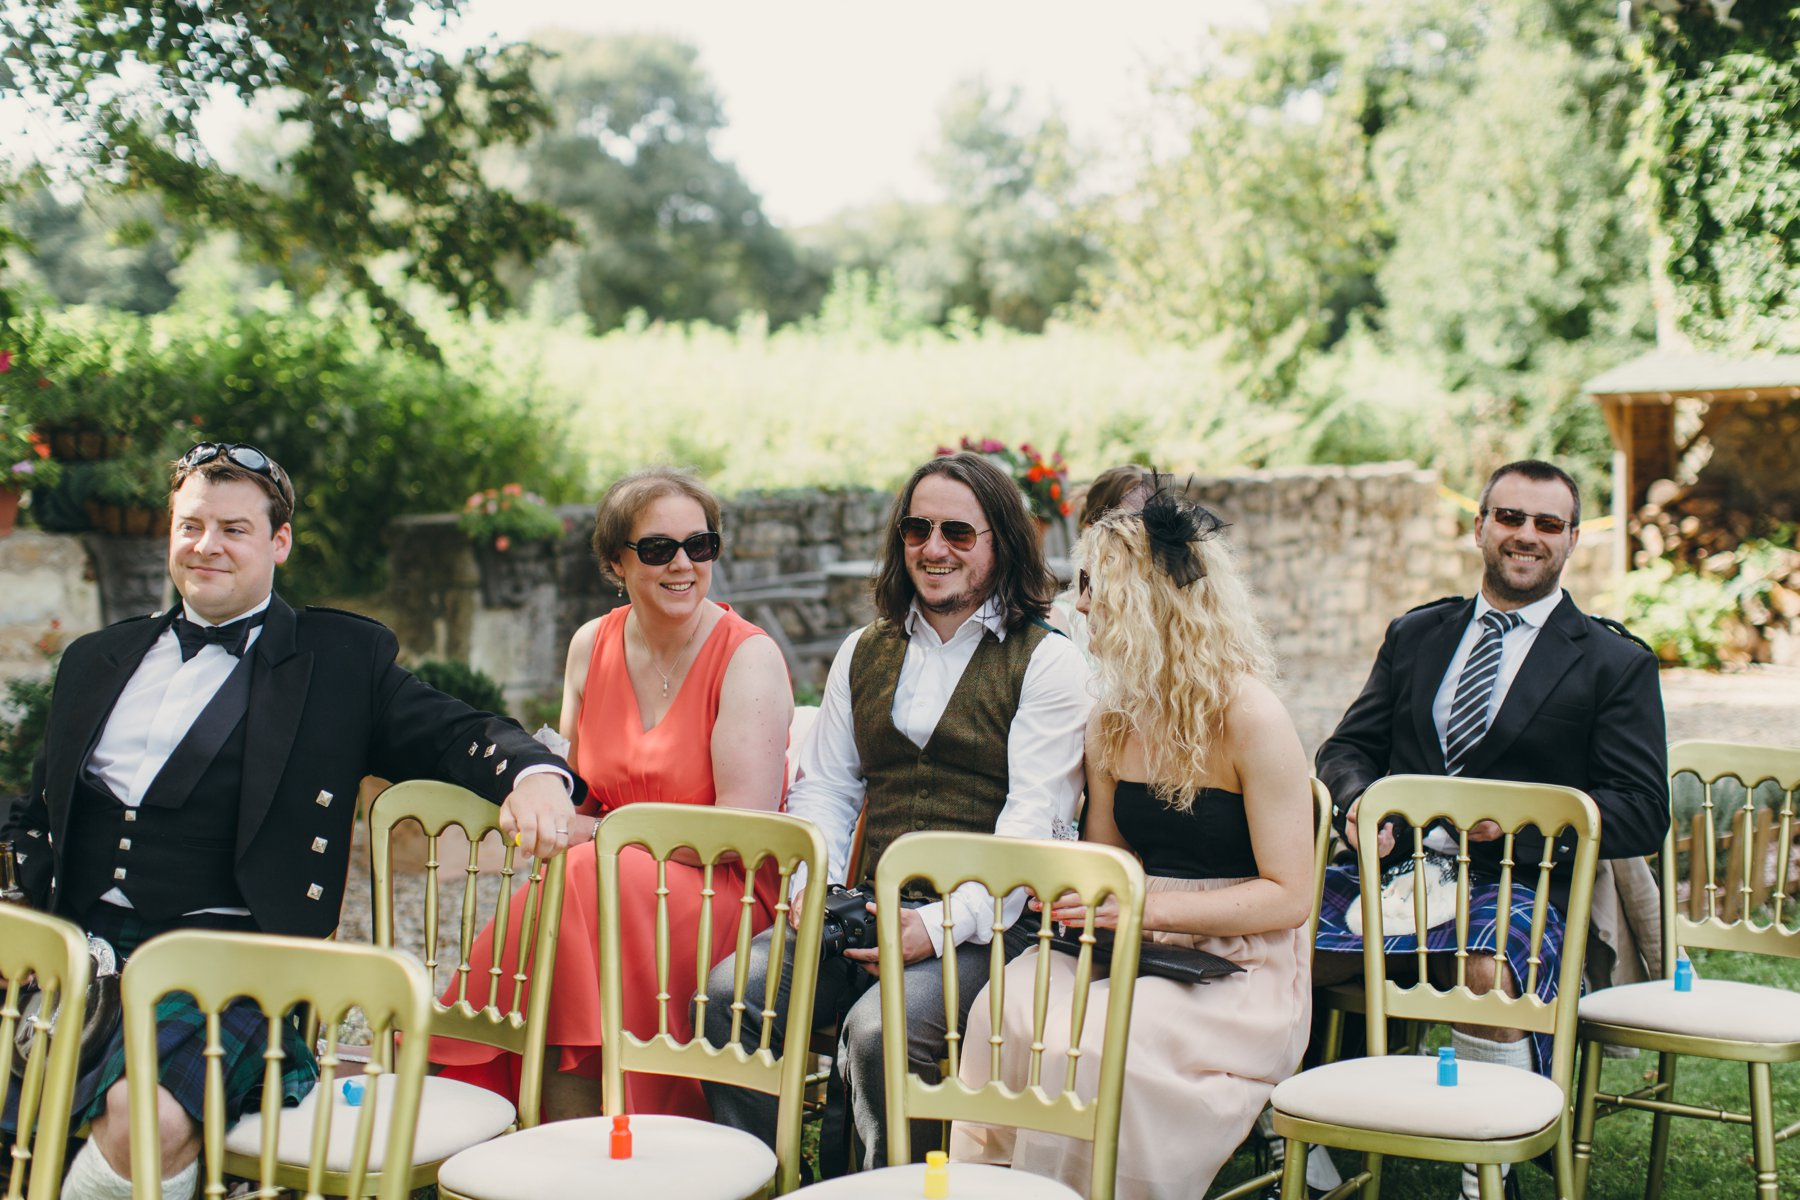 petitmoulin_france_bordeaux_weddings_0032